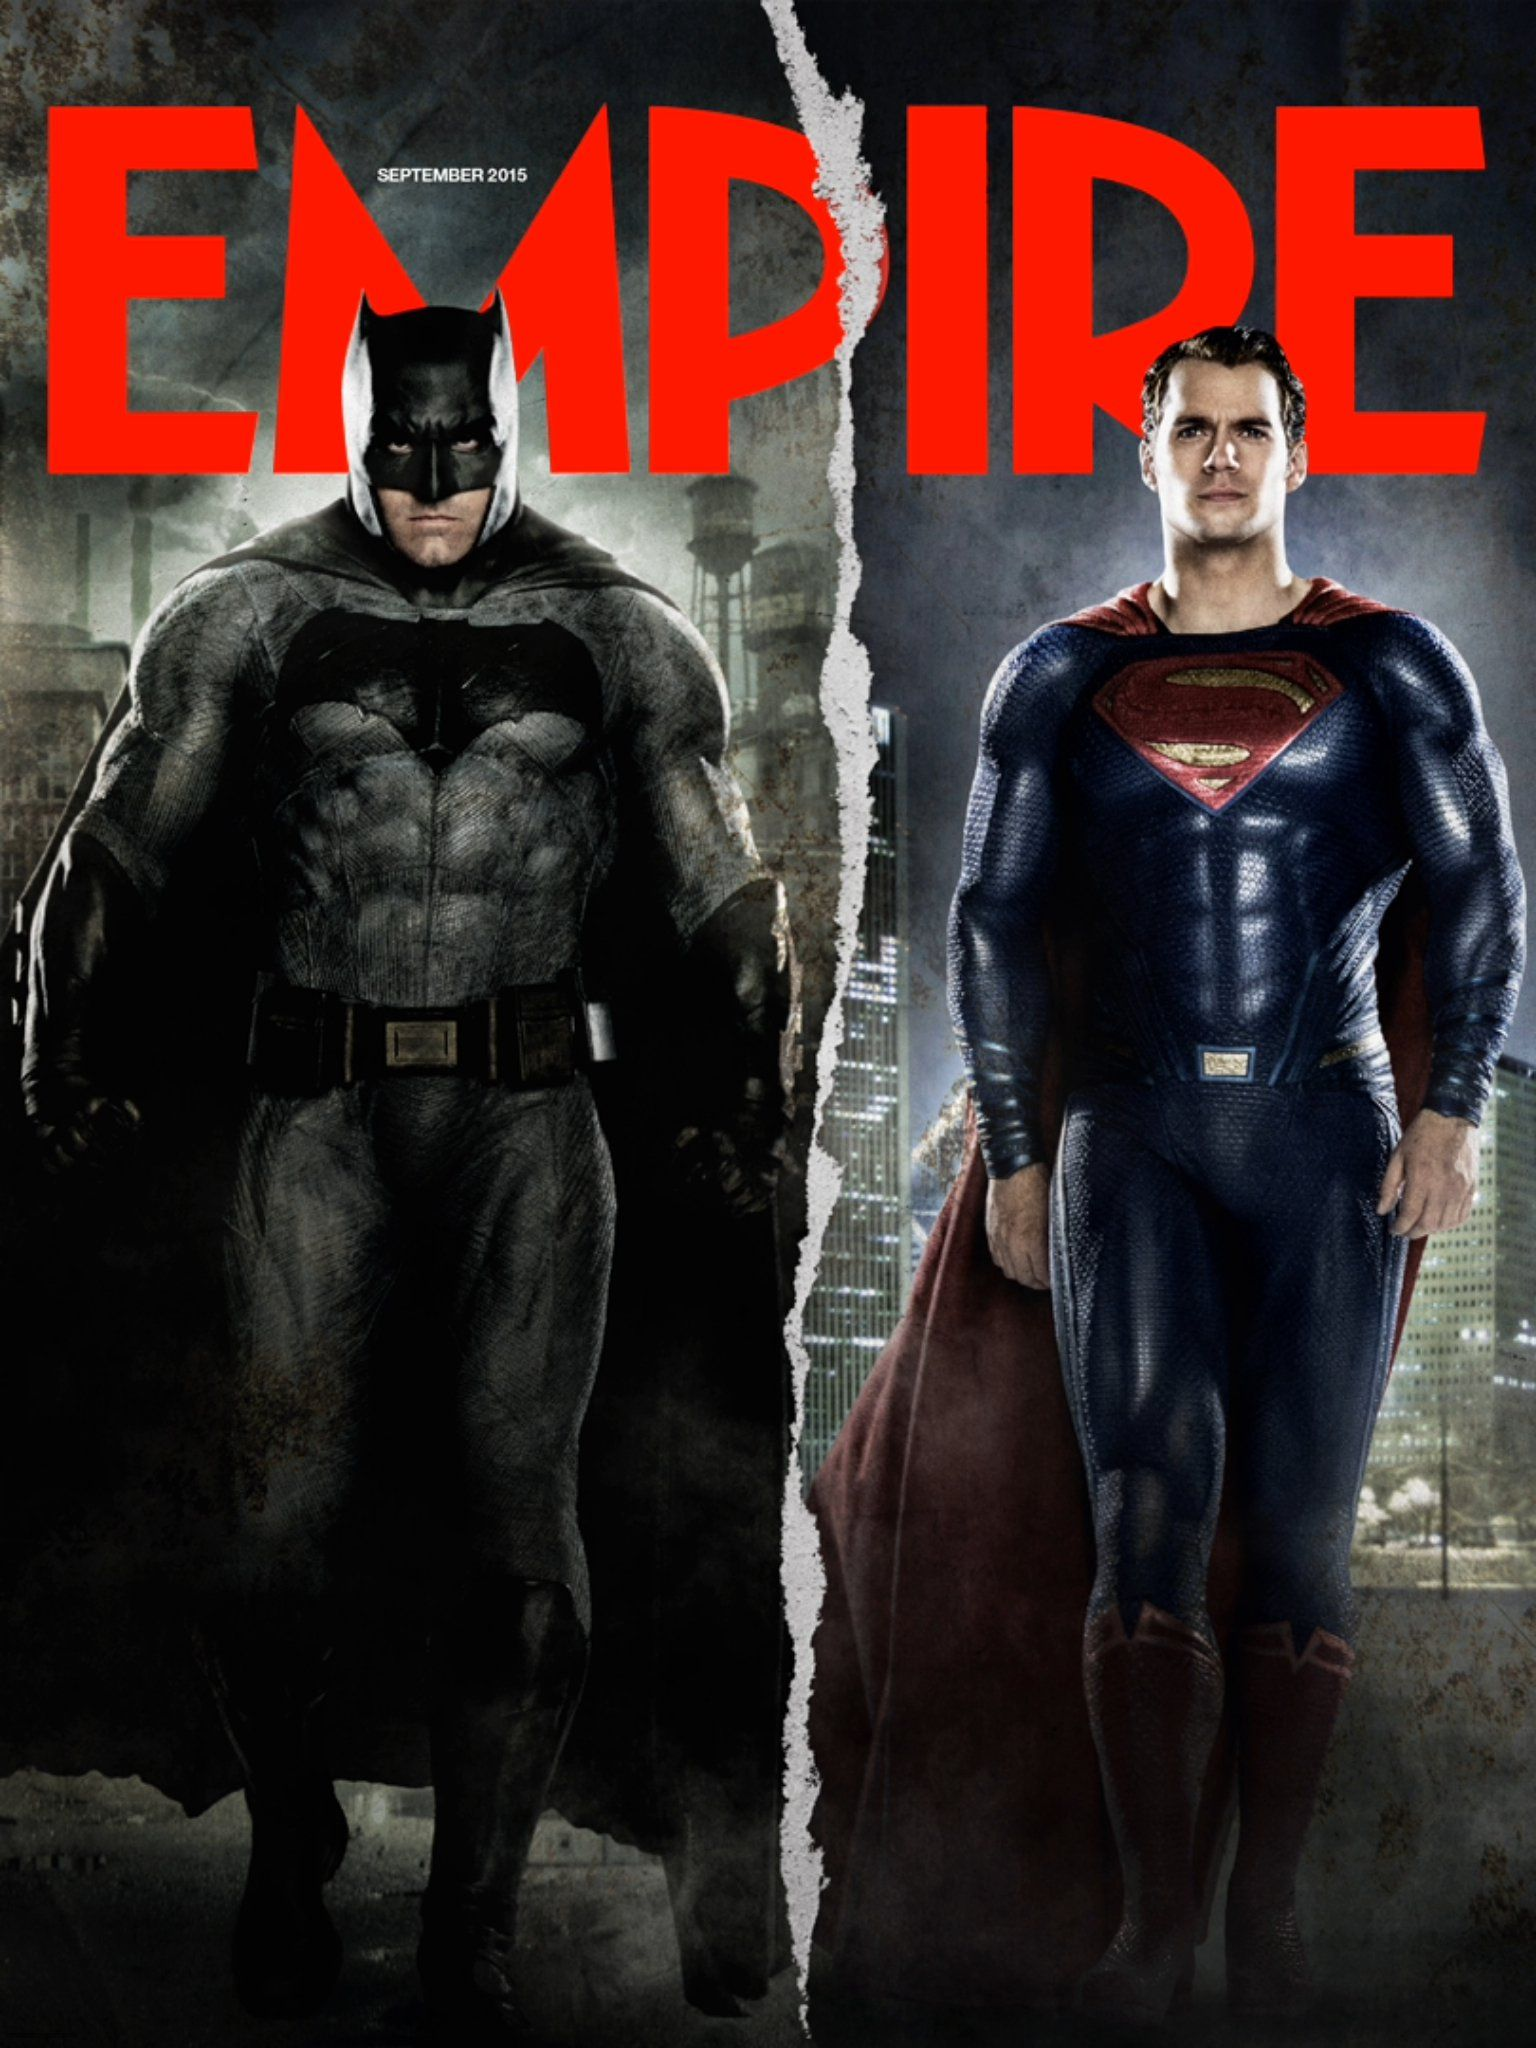 12 - Batman V Superman - Empire Cover02